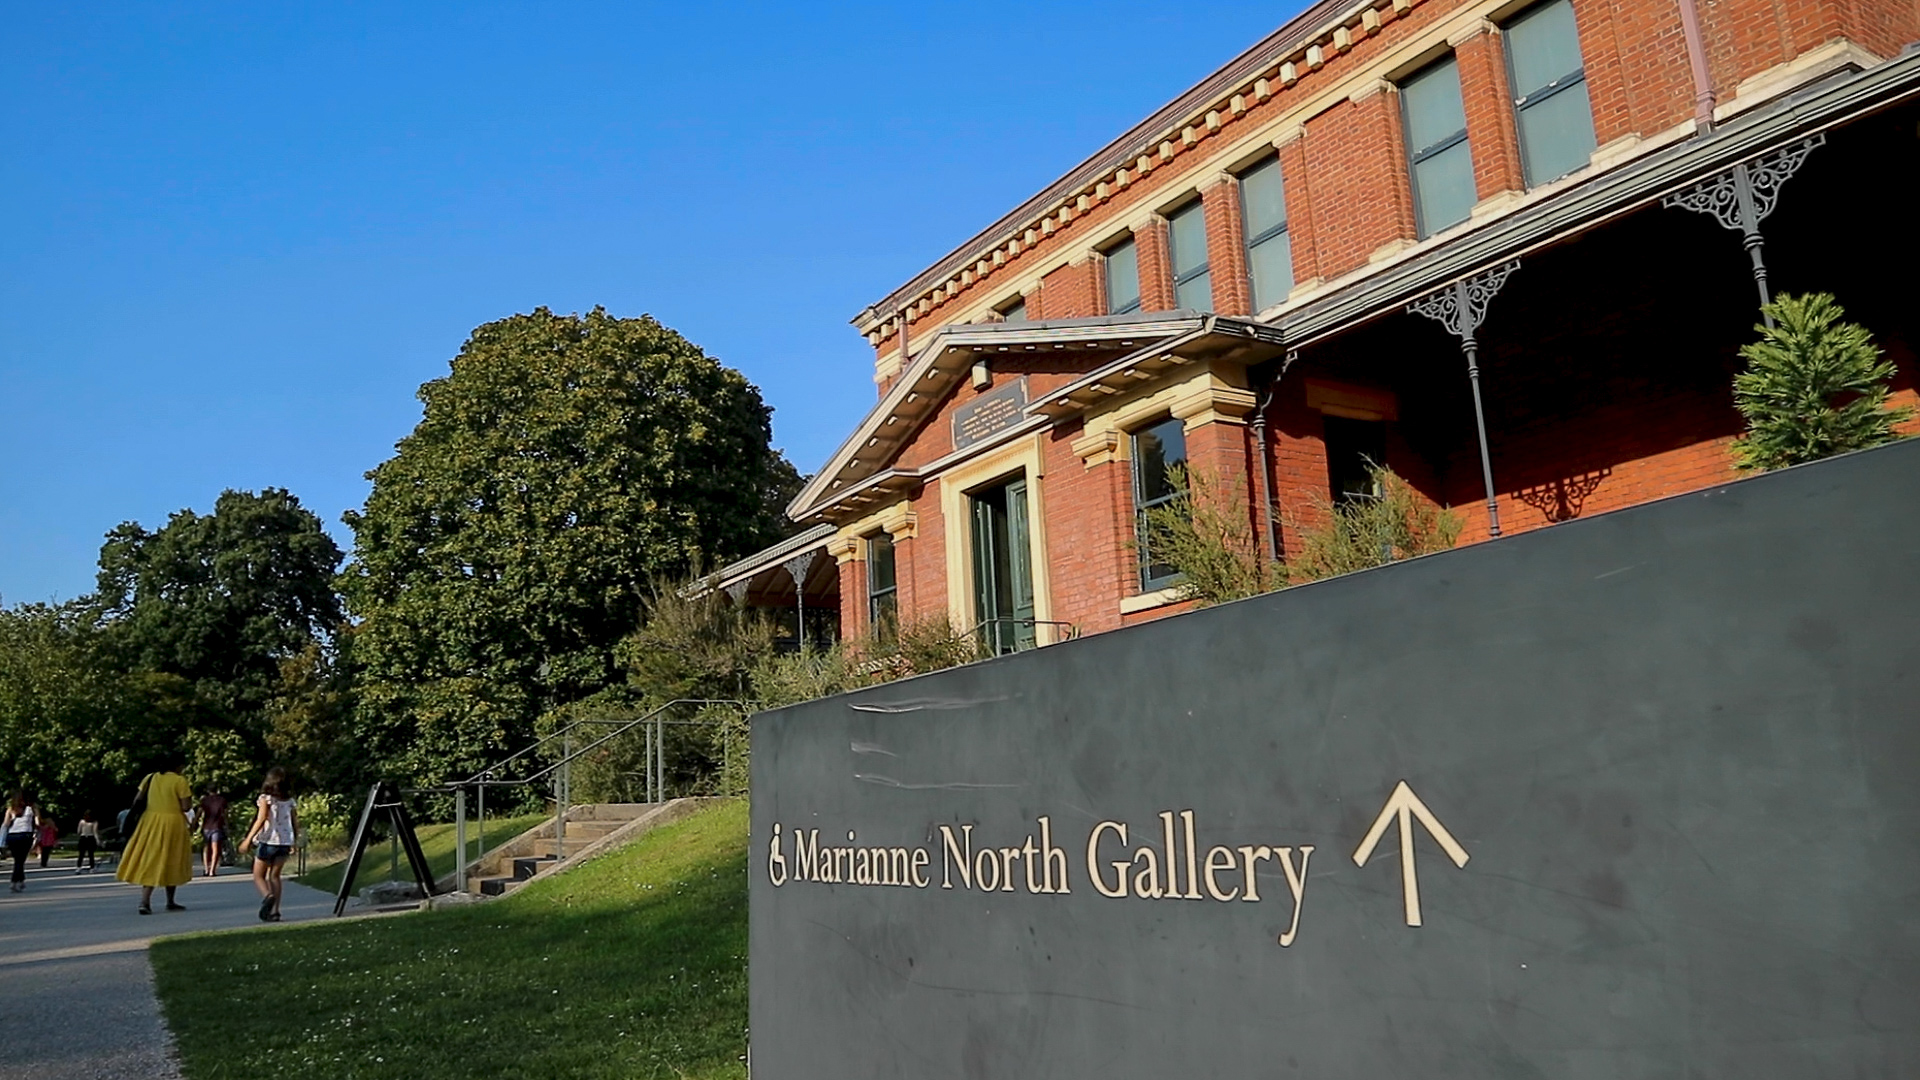 The sign of Marianne North gallery in Kew gardens with the from side of the gallery building